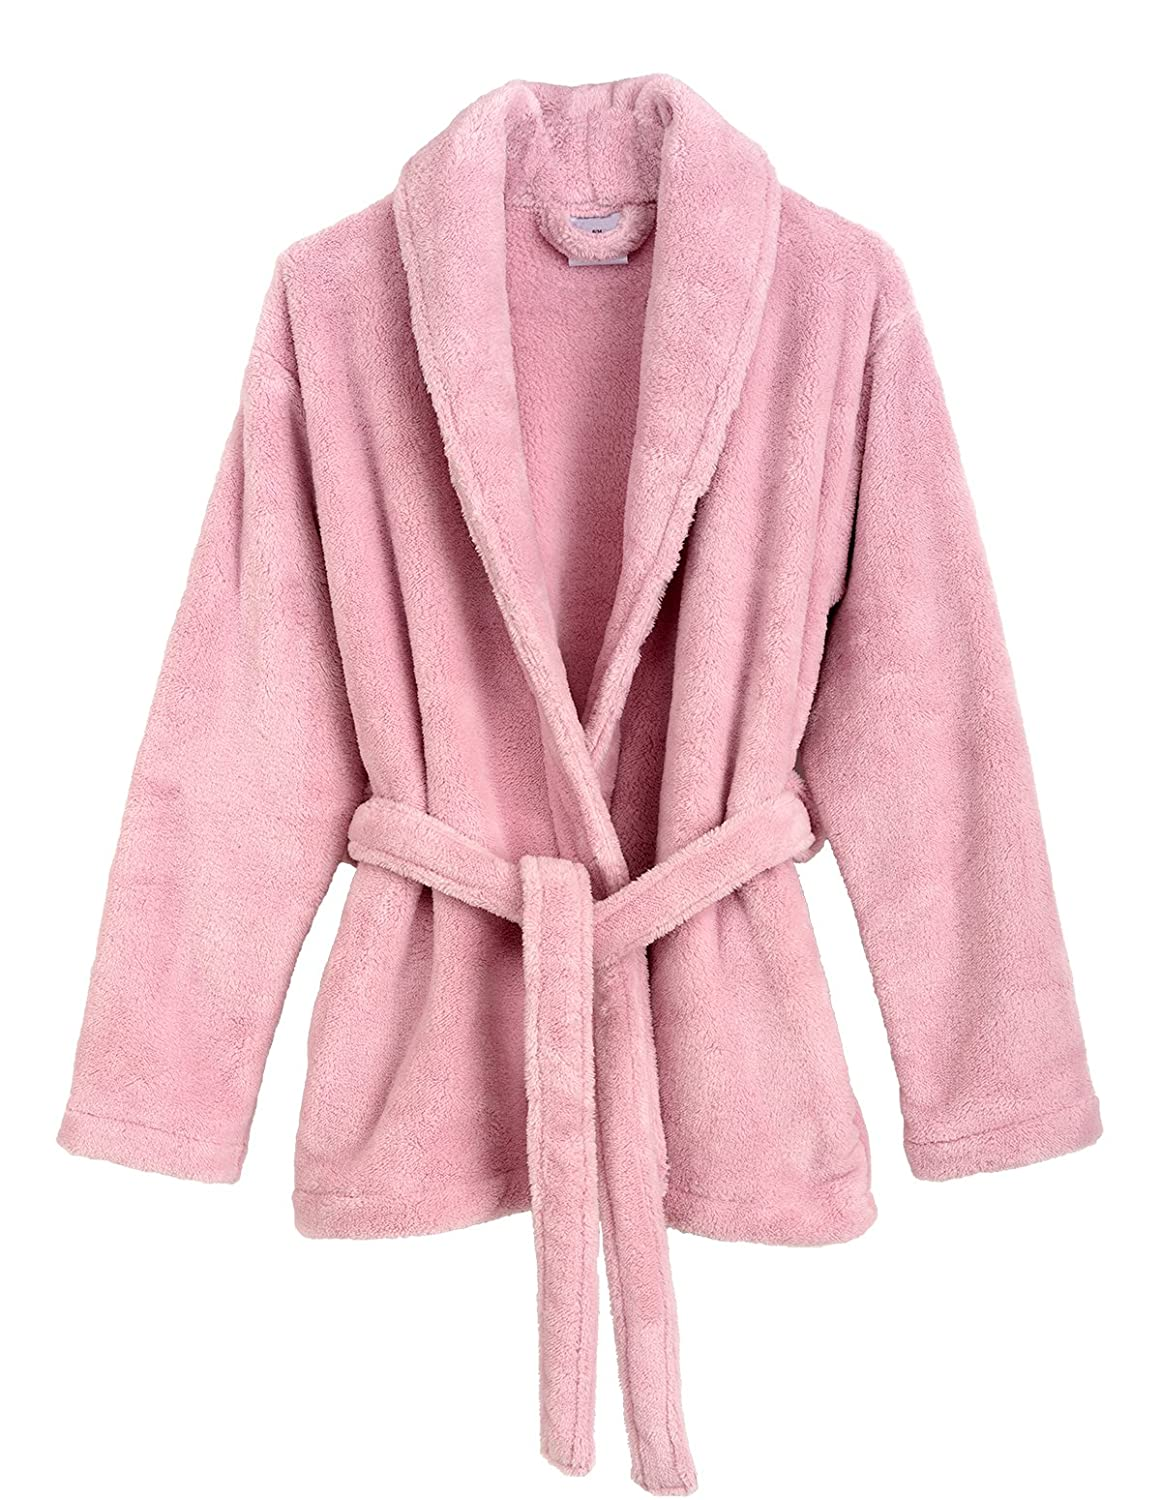 TowelSelections Women s Bed Jacket Fleece Cardigan Cuddly Robe Made in  Turkey at Amazon Women s Clothing store  1a79ff37b